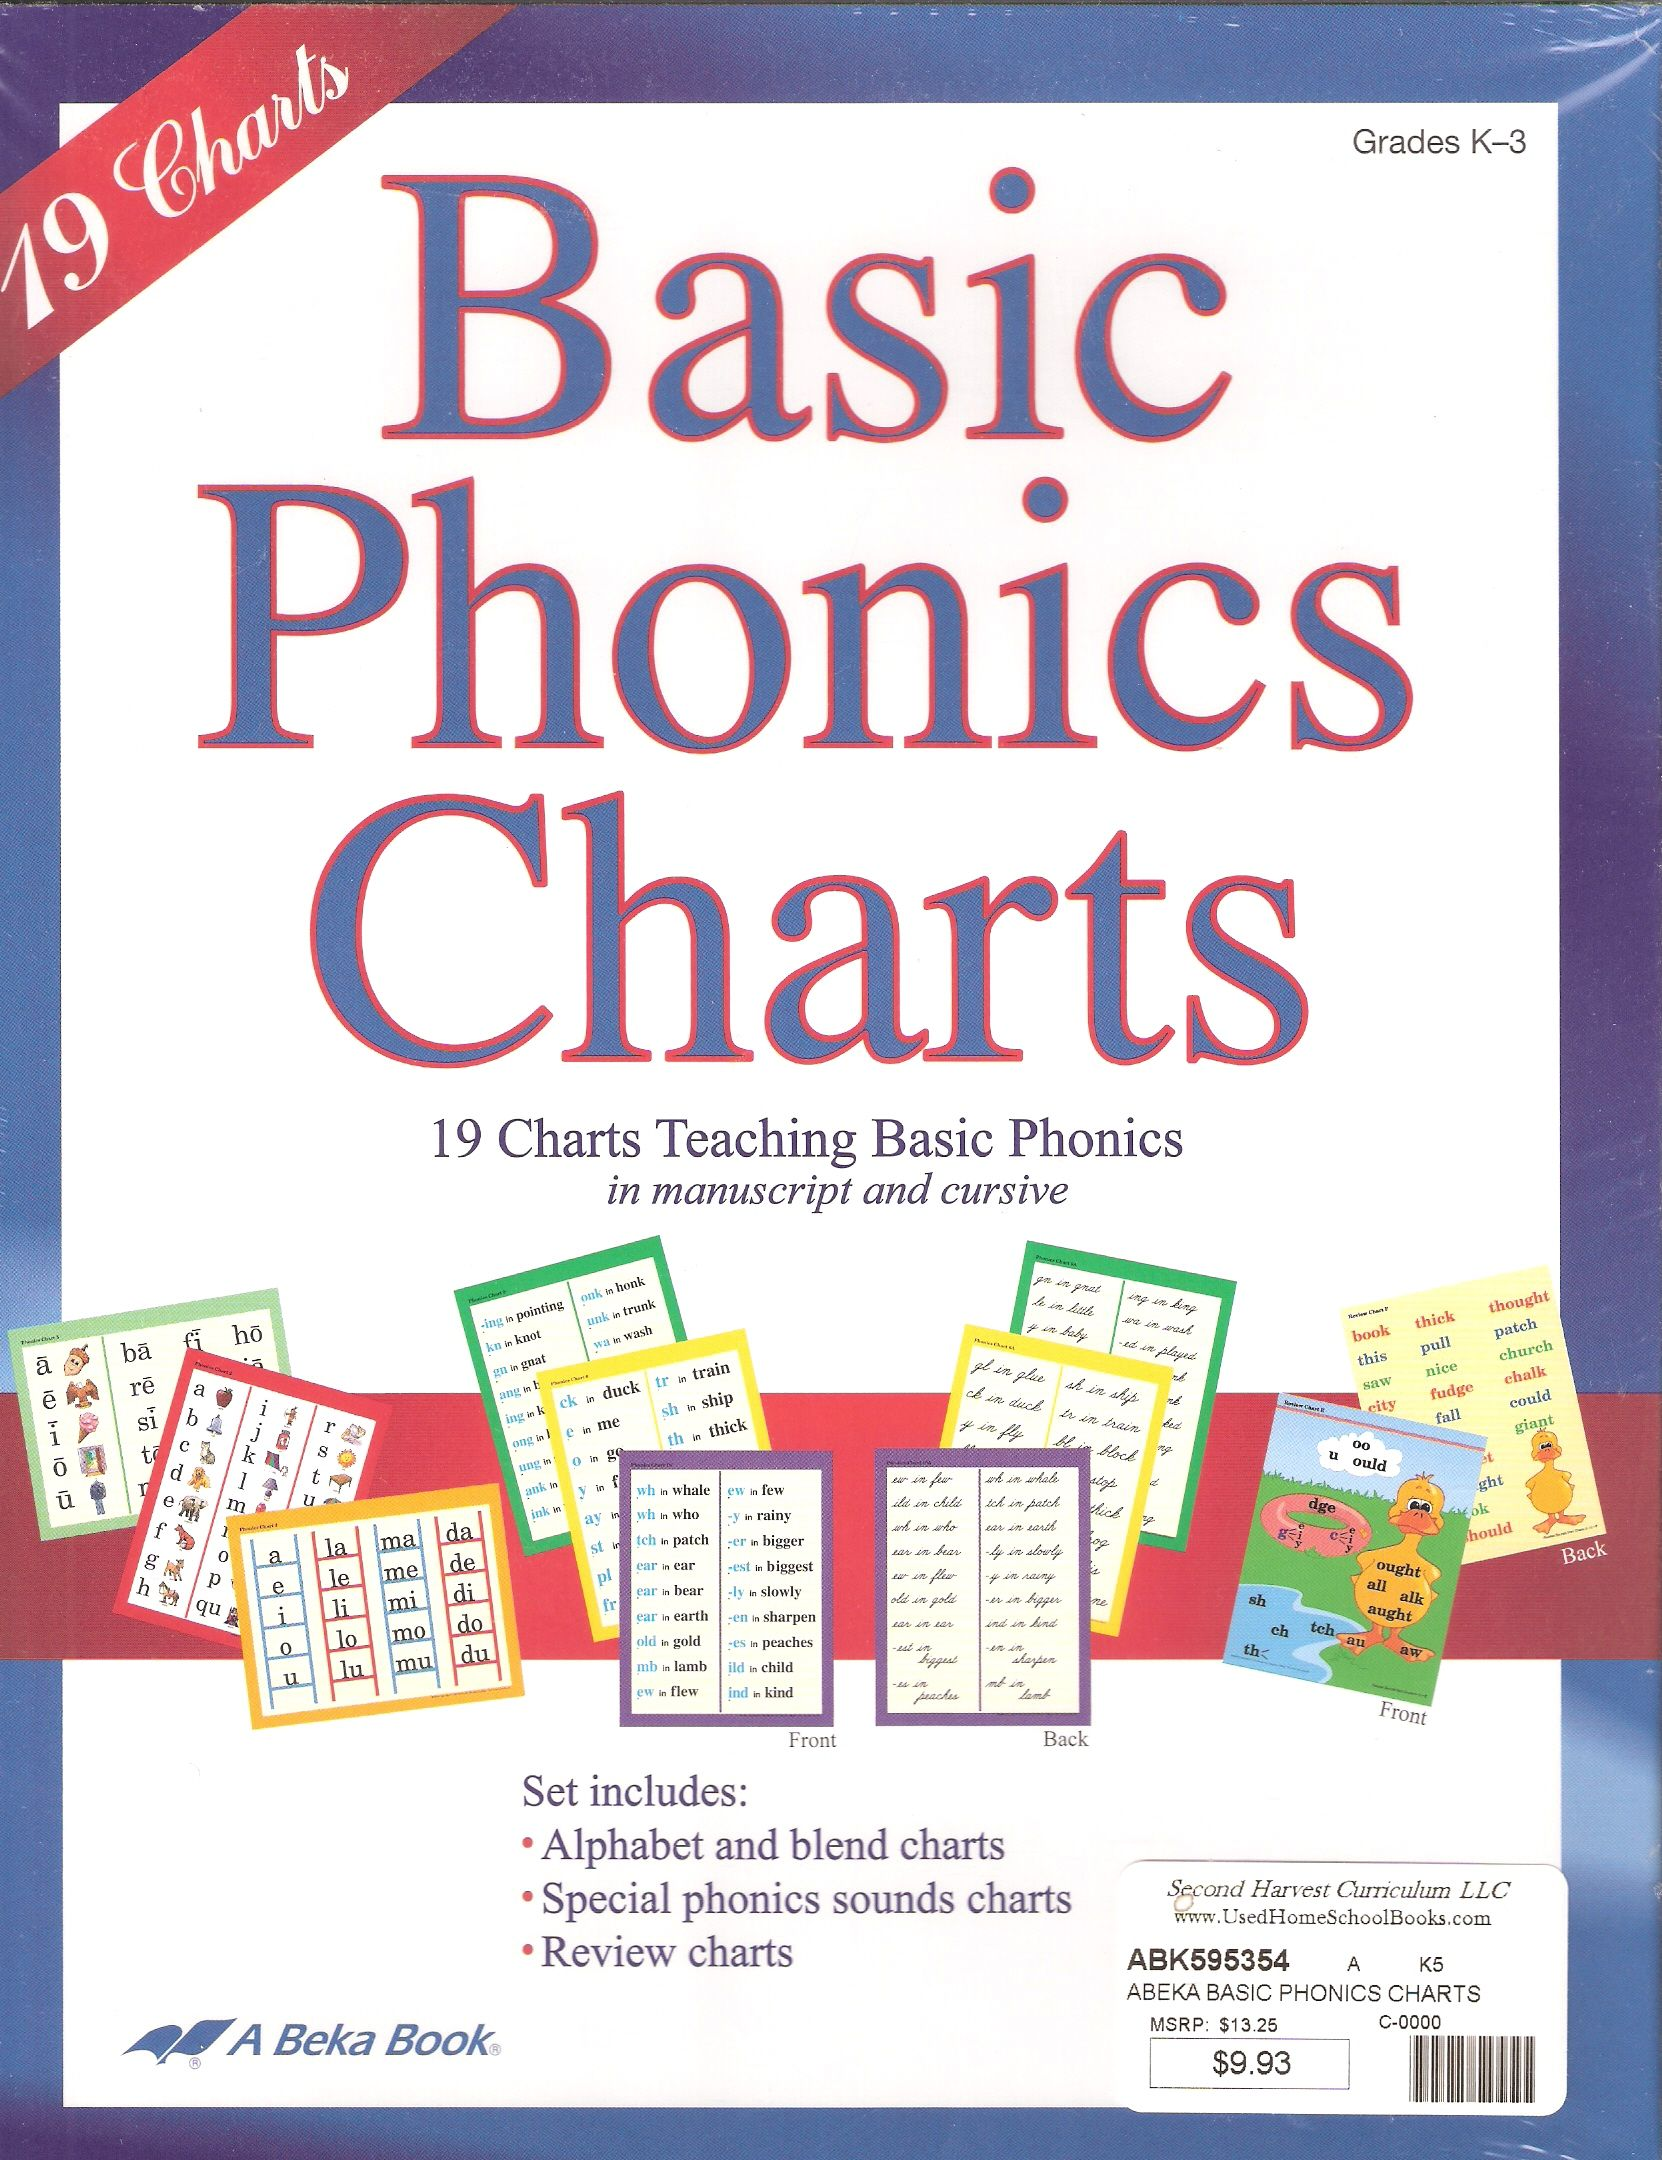 Abeka Basic Phonics Charts Include All Sounds Introduced In Grades 1 3